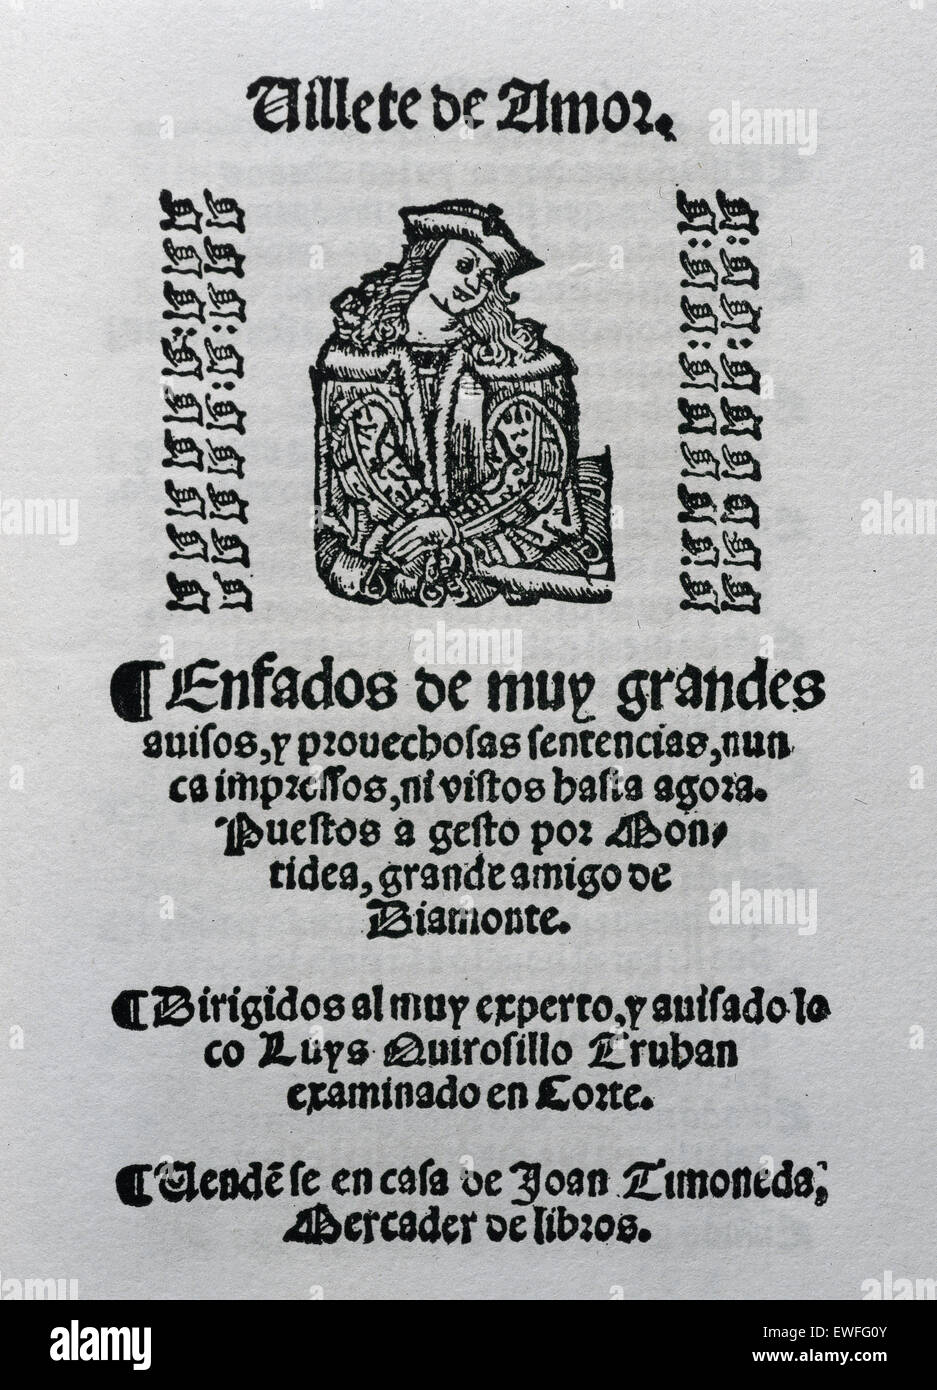 Villete de Amor by Baptista Montidea. Song book. Addressed to Luys Quirosillo Truhan. - Stock Image